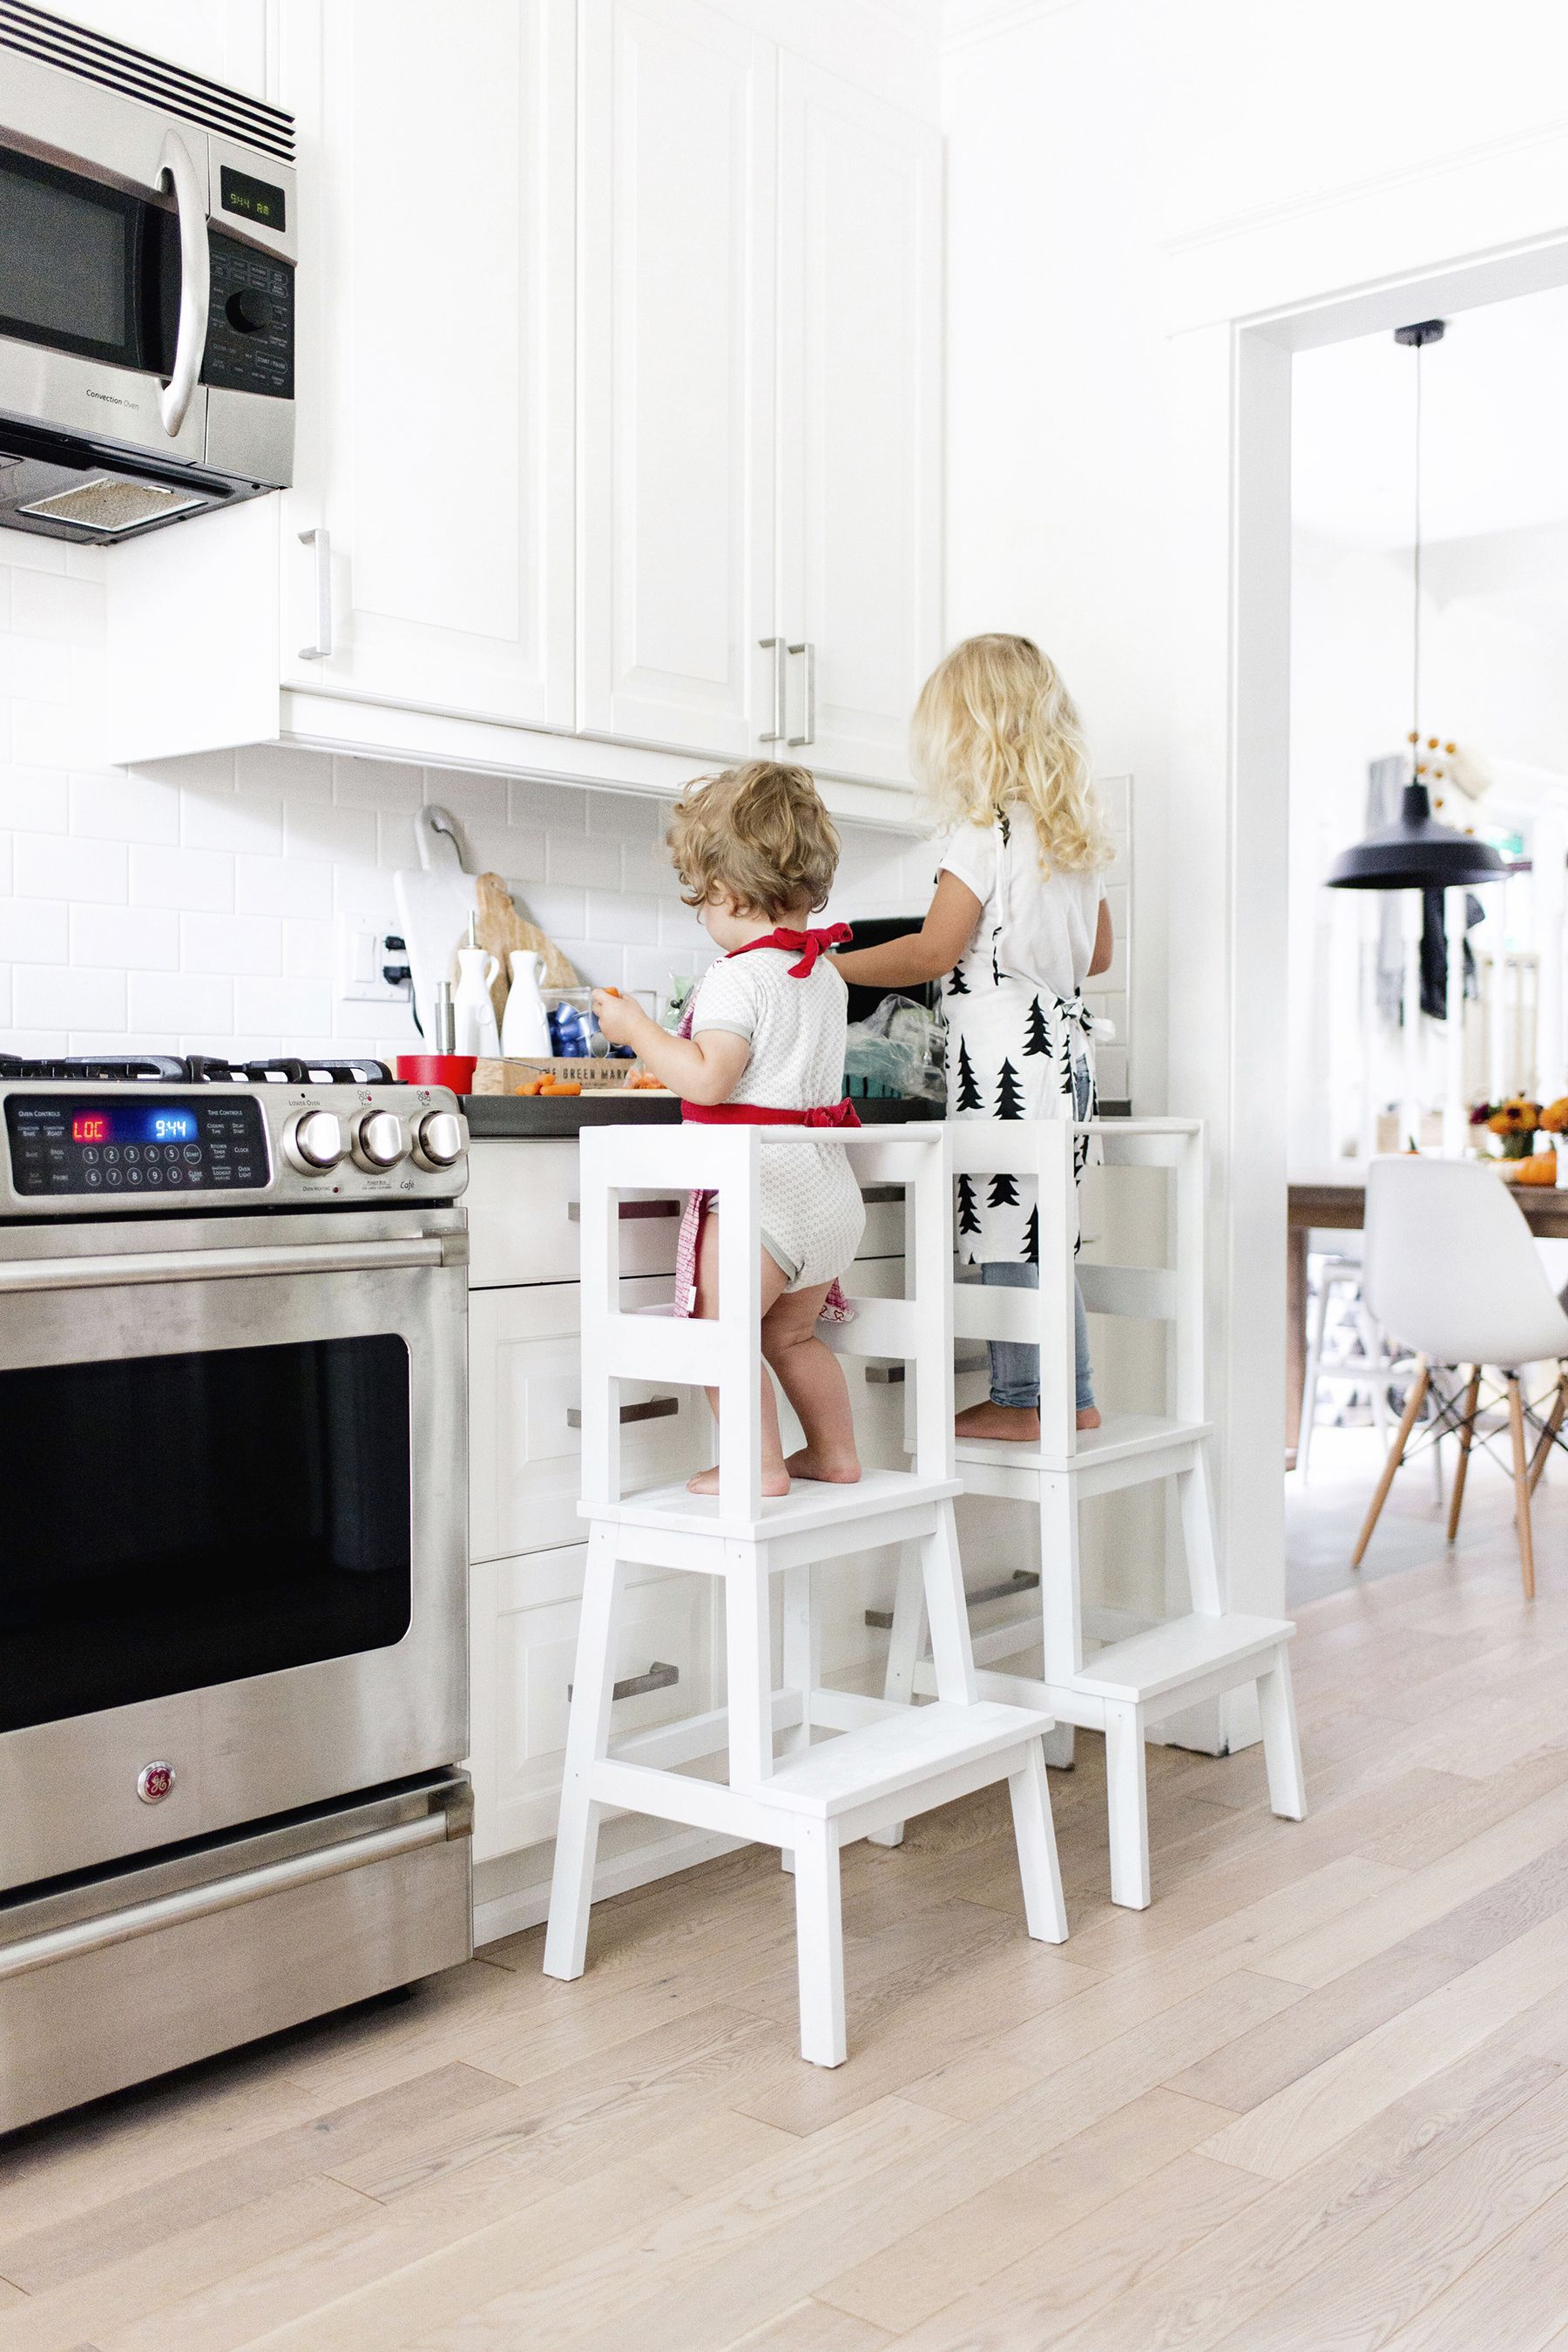 IKEA Hacks for the Kitchen | Learning tower, Tower and Stools